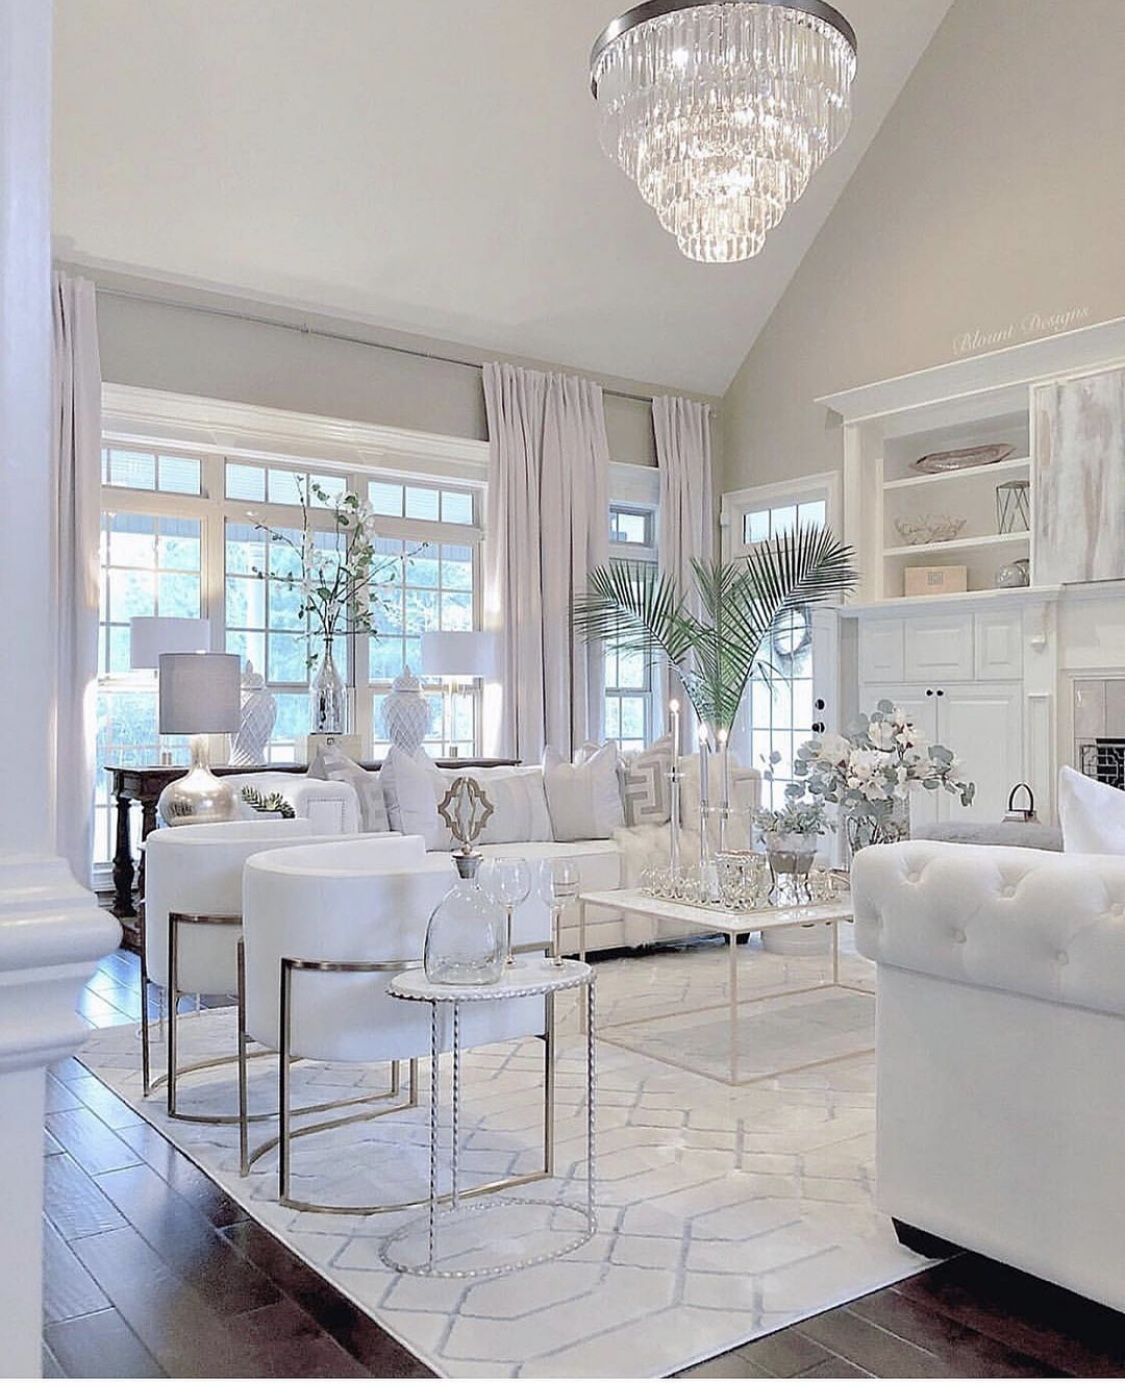 Stunning All White Glam Living Room Decor With White Tufted Sofas White Living Room Decor Glam Living Room Decor Farm House Living Room